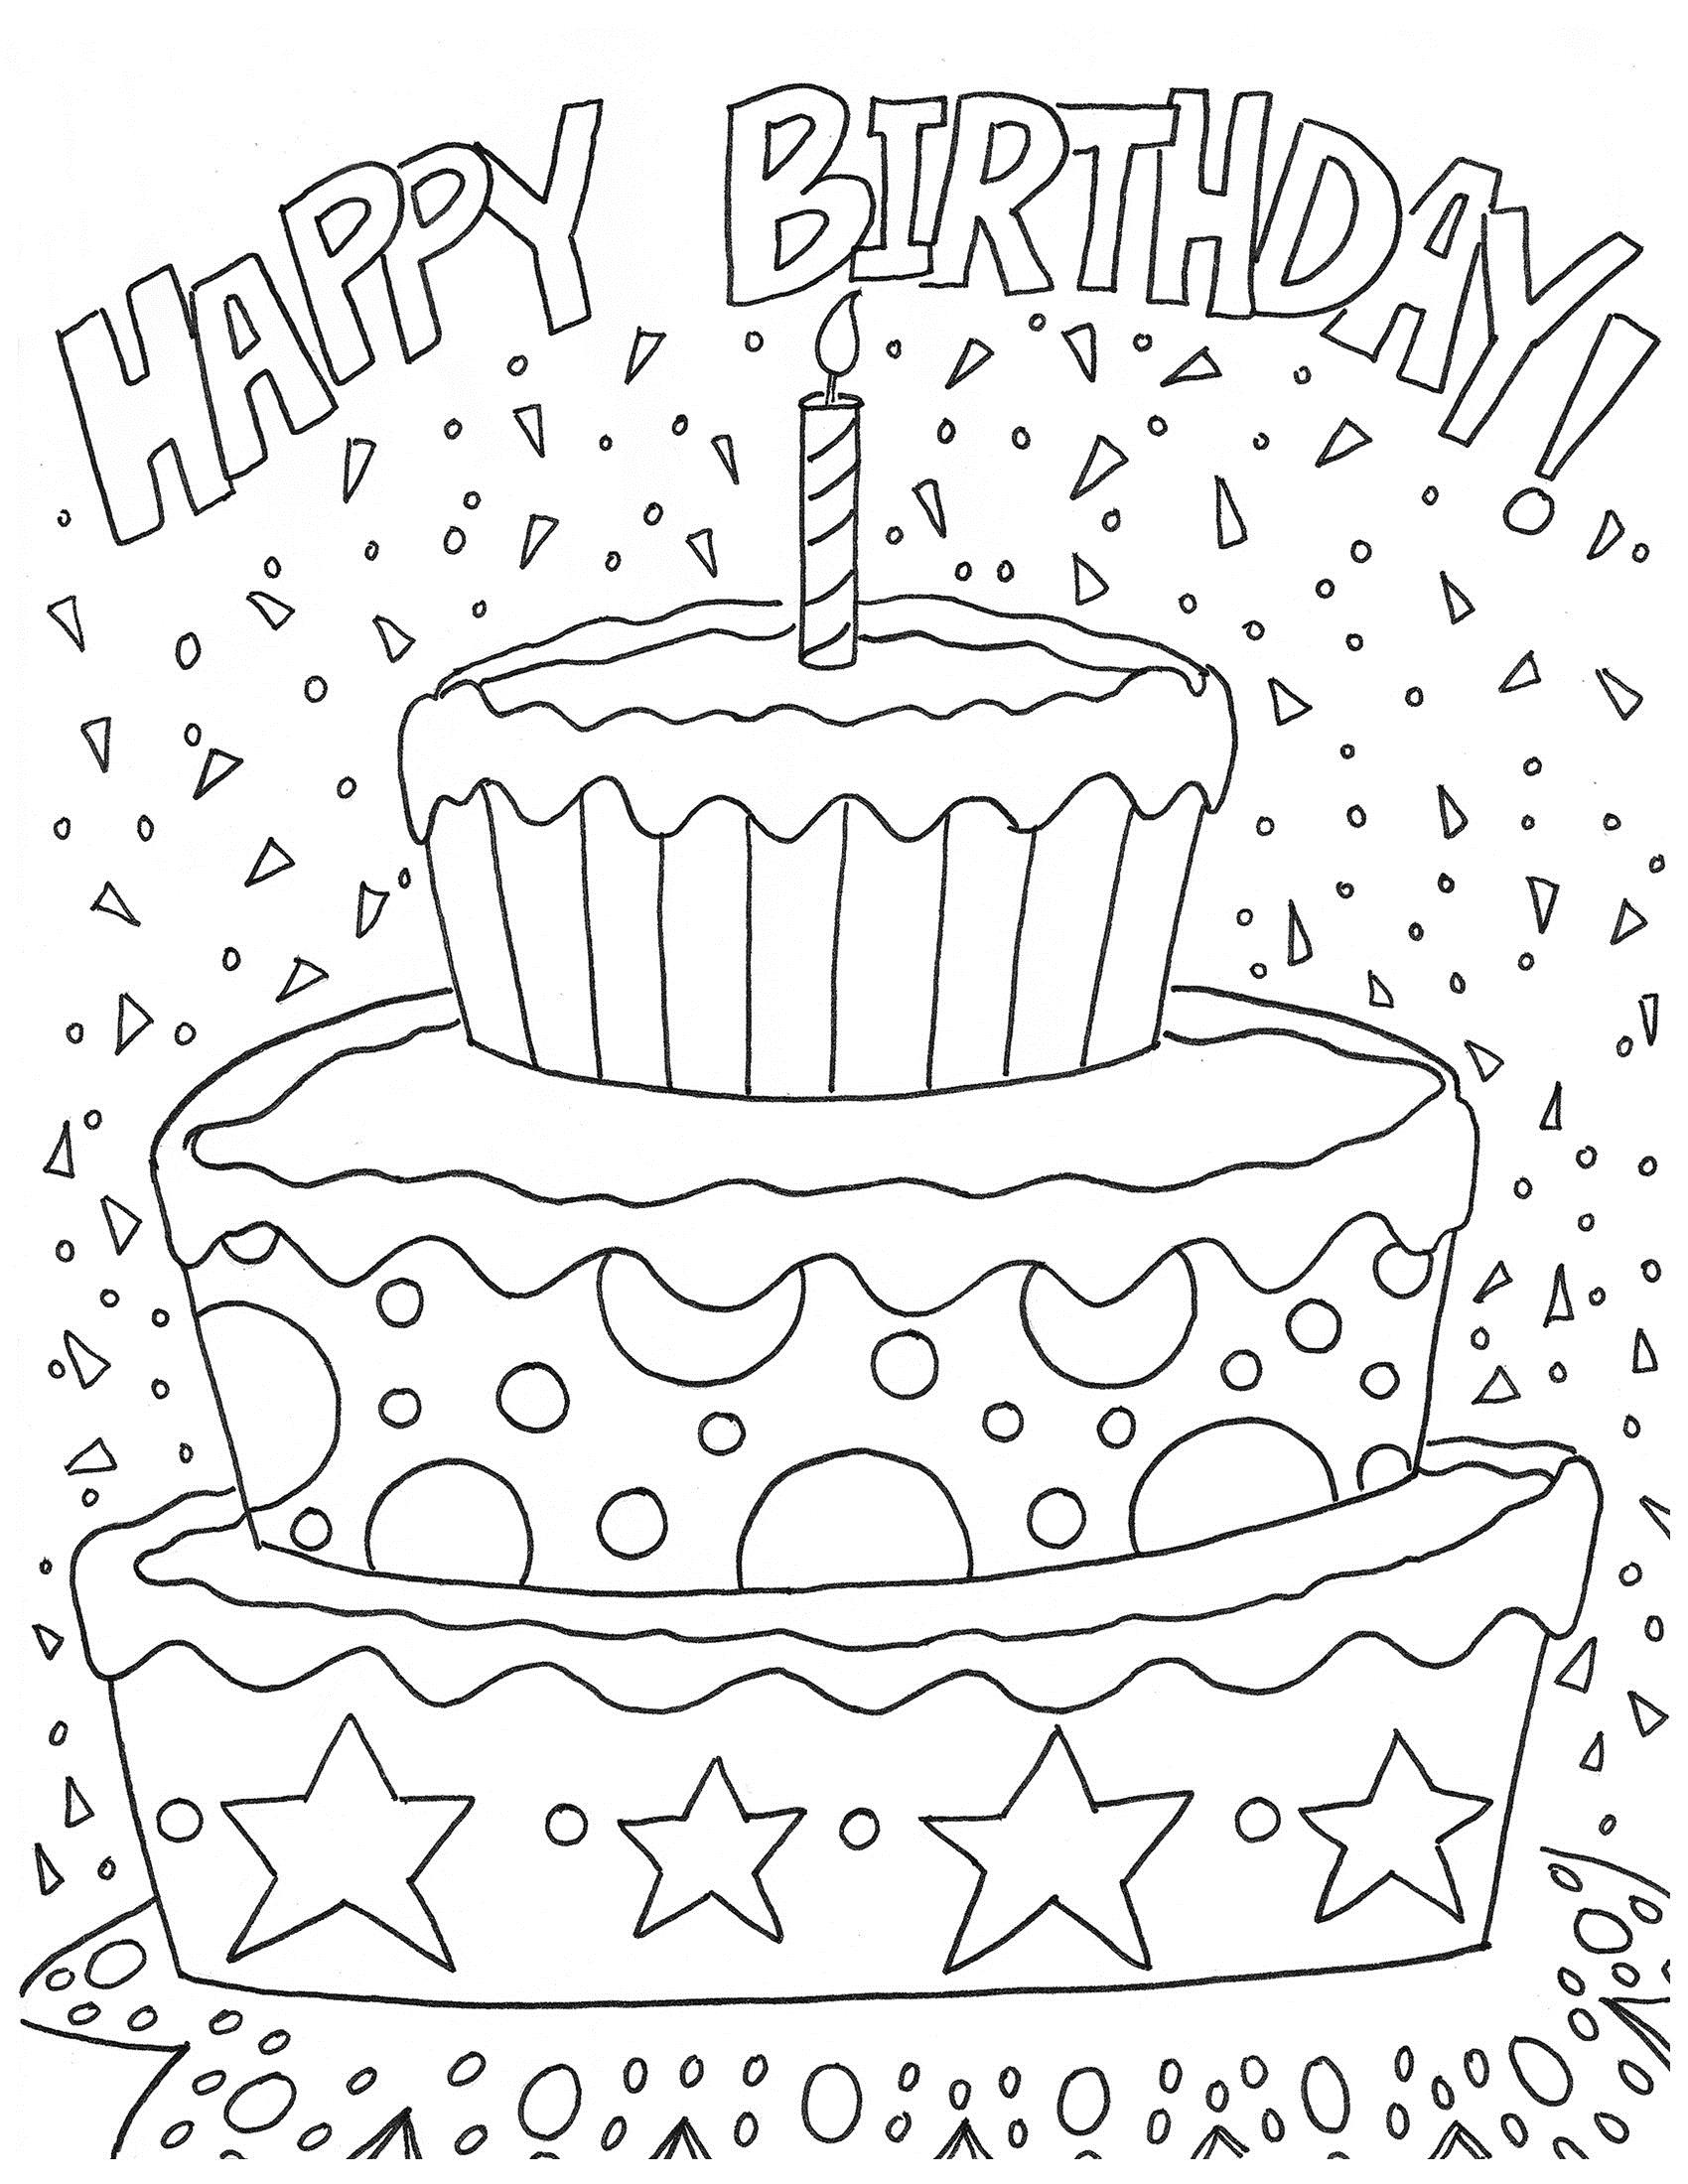 happy birthday coloring pictures ; direct-happy-birthday-coloring-pages-printable-tested-sheets-launchin-9017-unknown